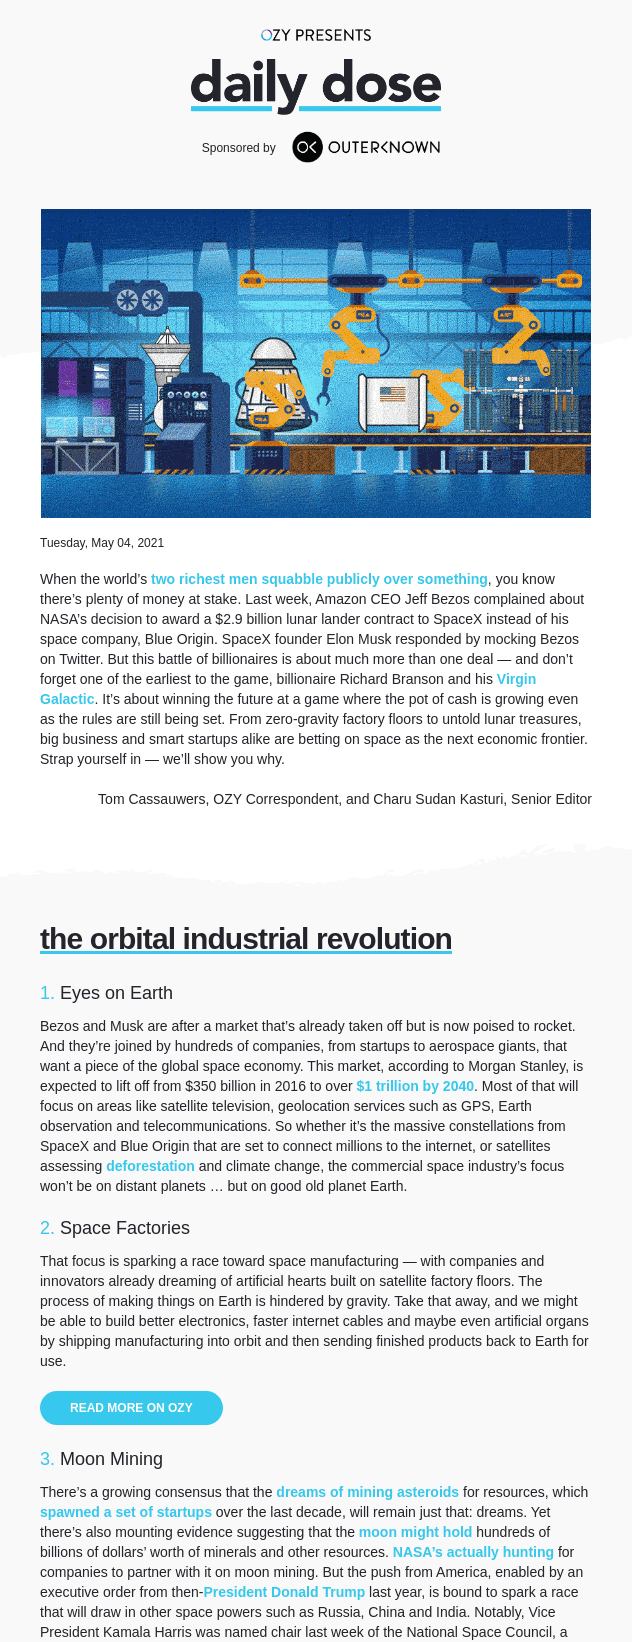 An example of a newsletter linking to several related resources